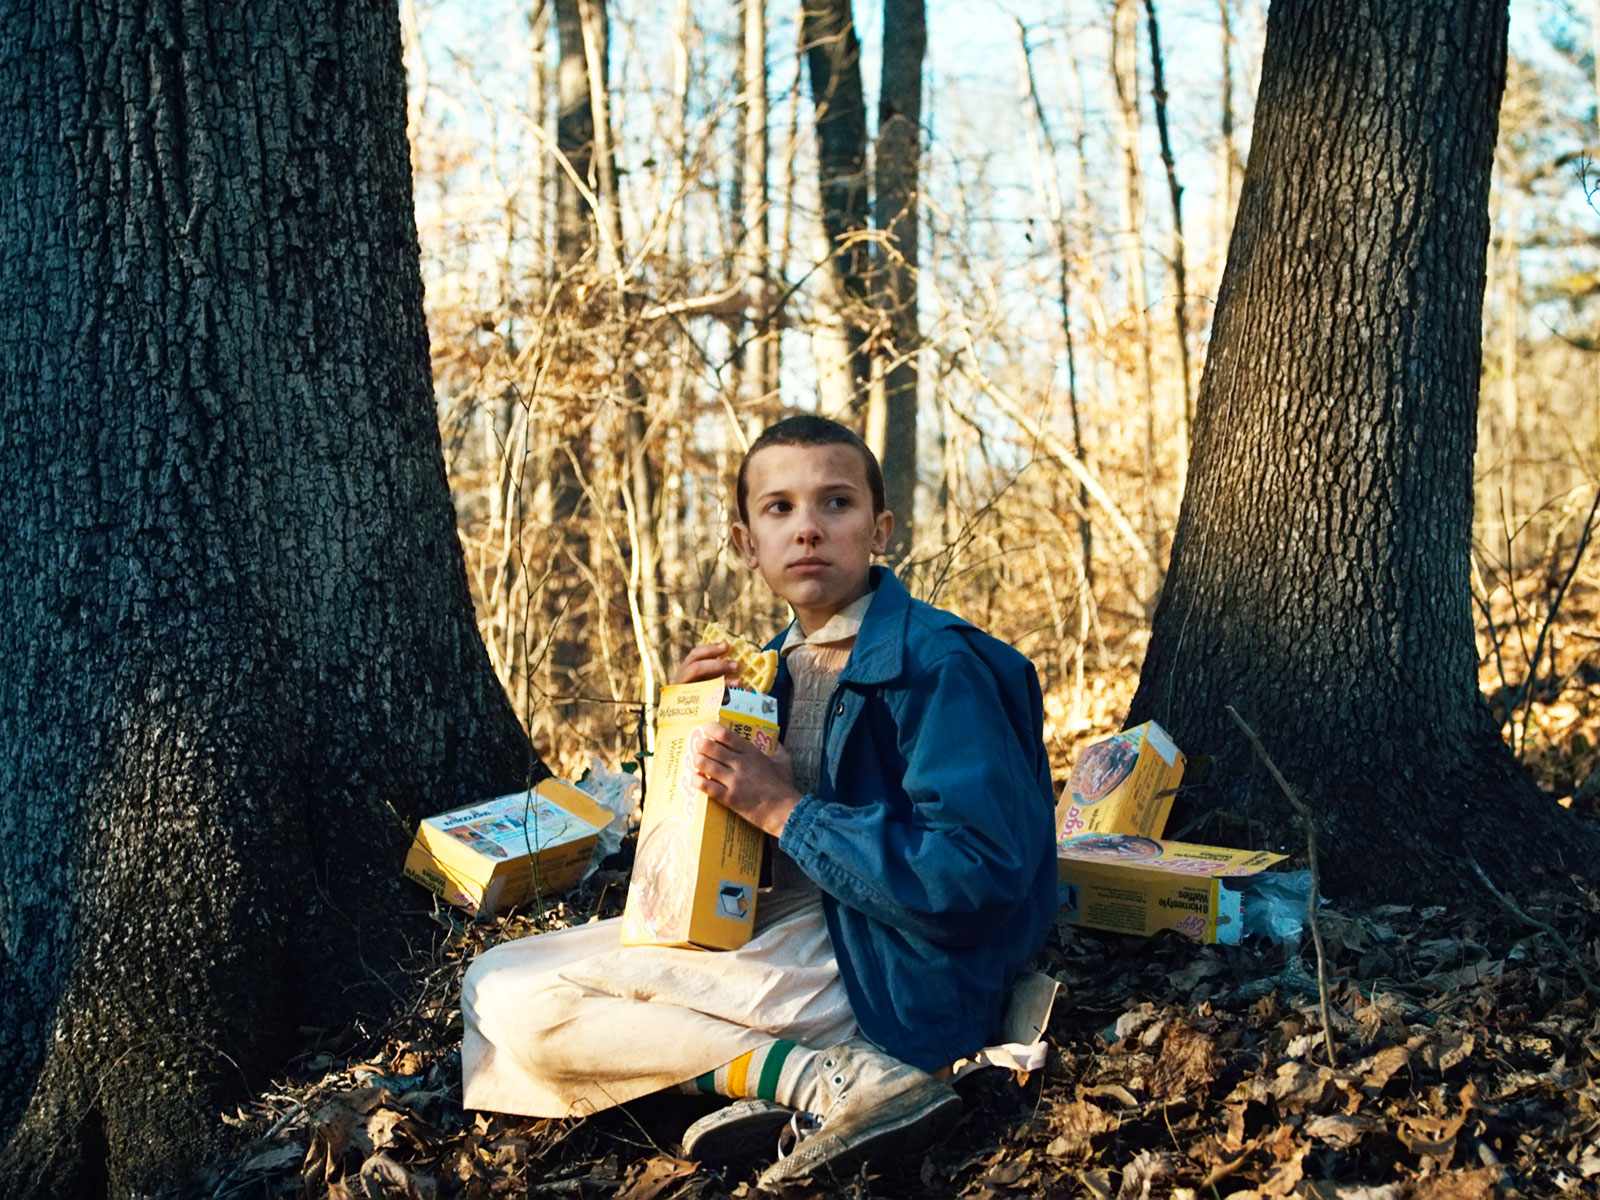 Cooking With Champagne What Eggo Waffles Mean To Eleven From Stranger Things